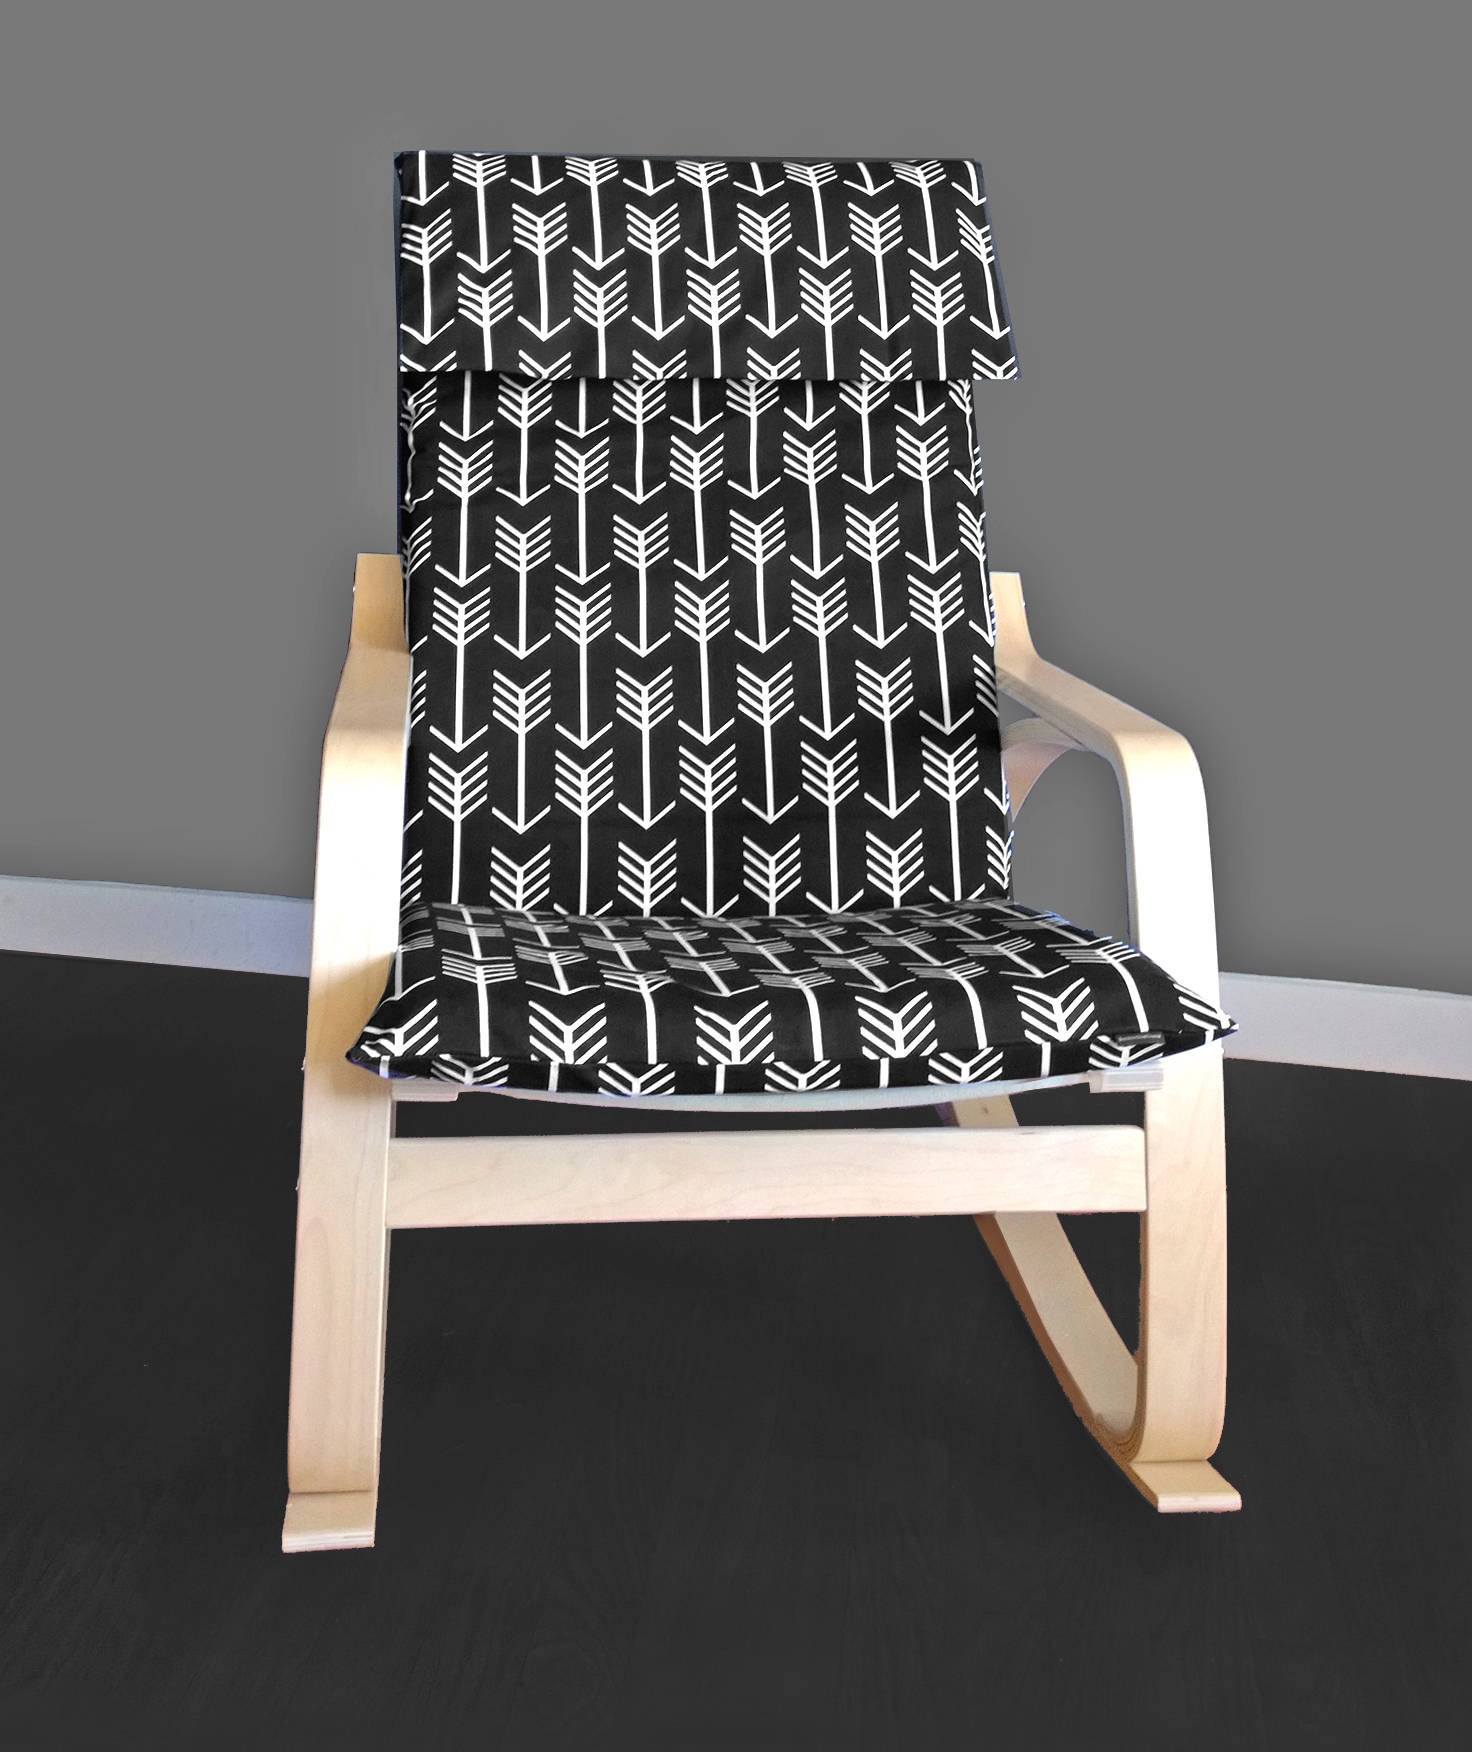 custom ikea chair covers ikea po ng arrow cushion seat cover. Black Bedroom Furniture Sets. Home Design Ideas